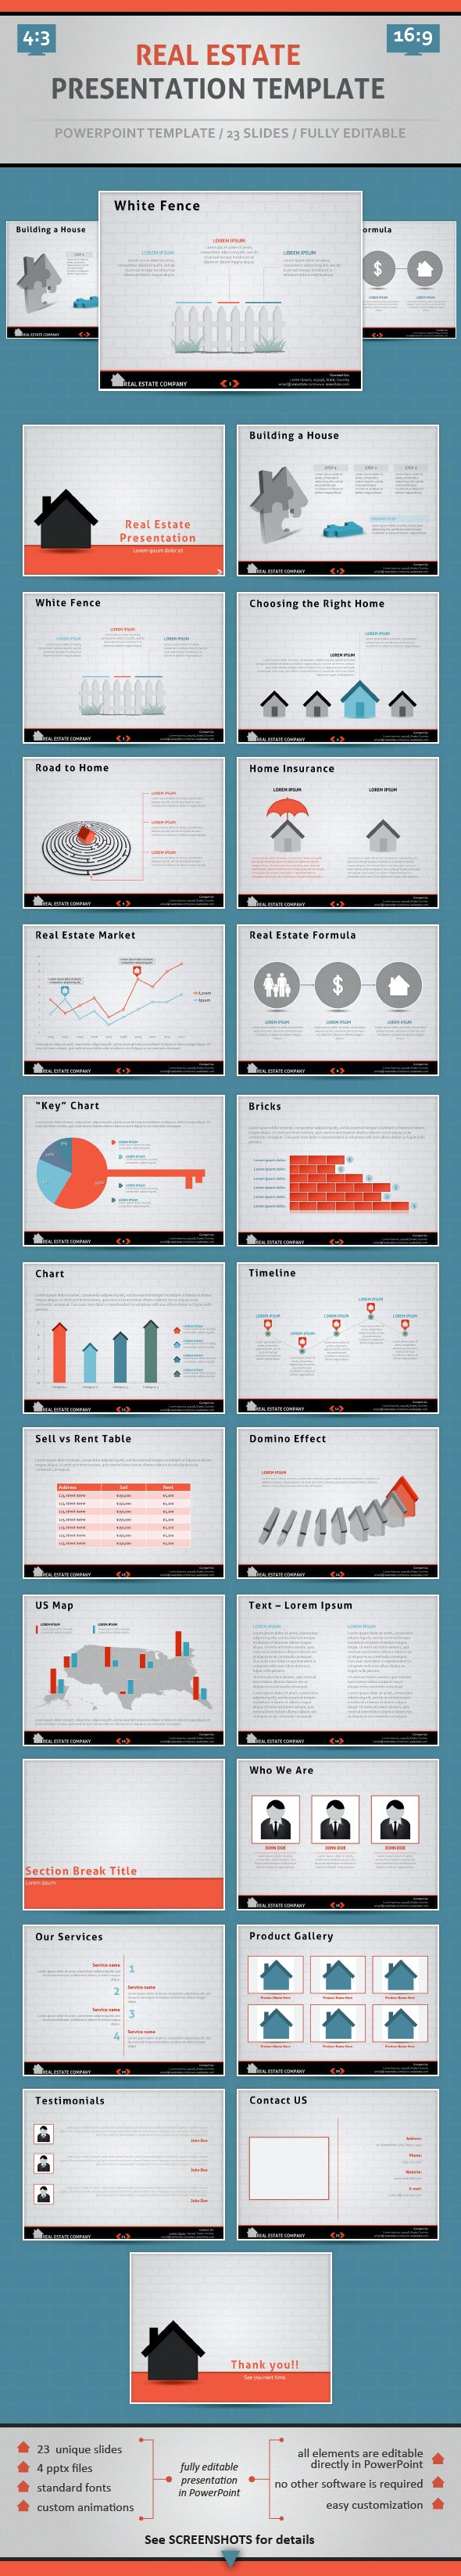 Real Estate Powerpoint Presentation Template - PowerPoint Templates Presentation Templates